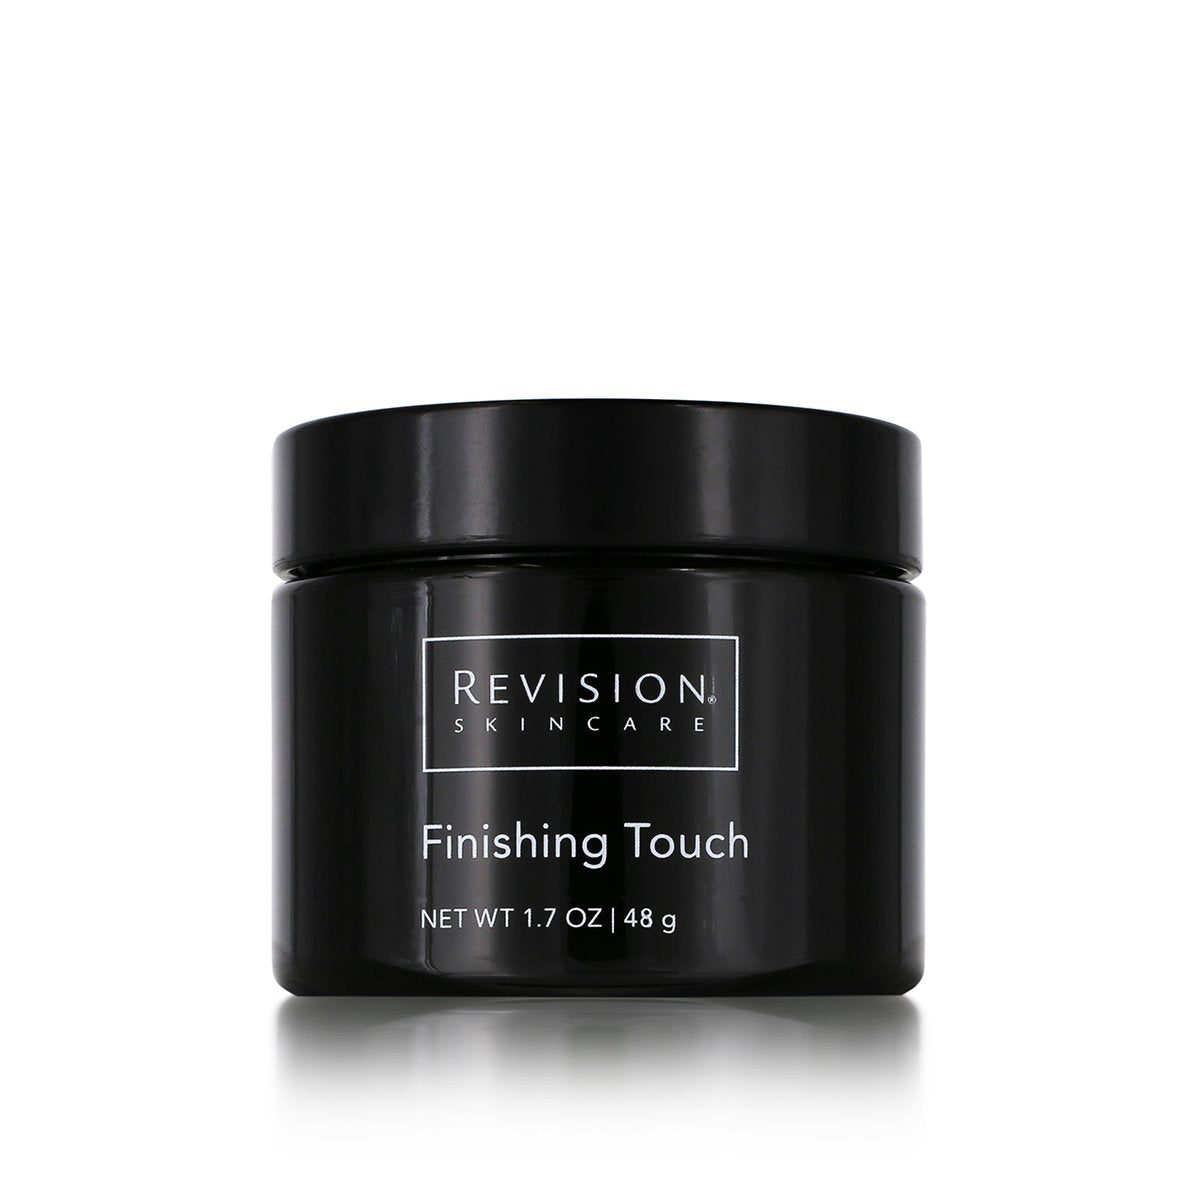 Finishing Touch by Revision Skincare